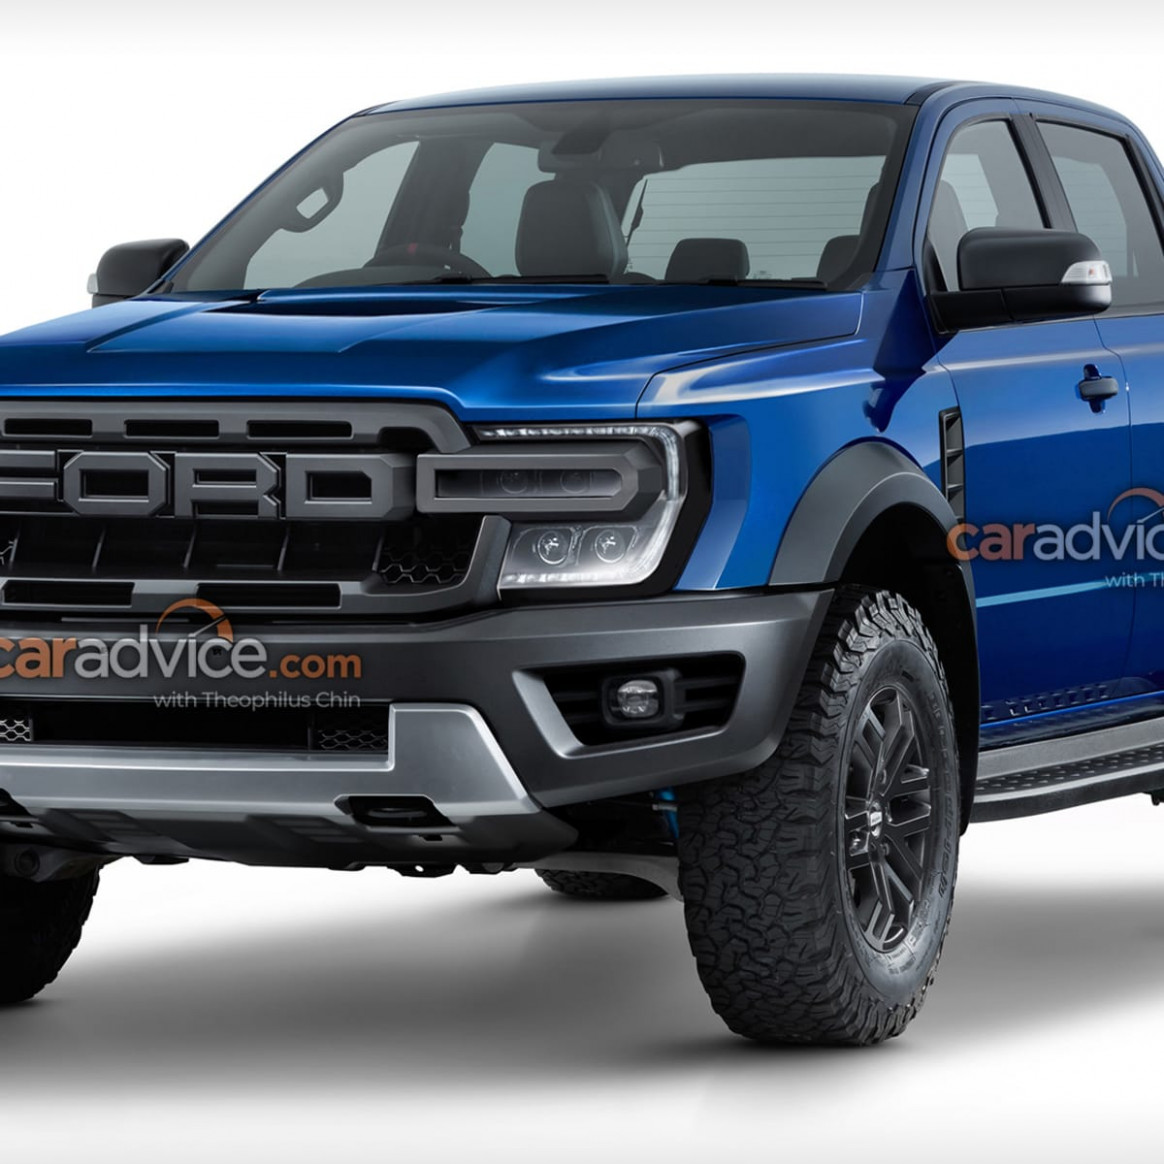 Exterior and Interior 2022 Ford Ranger